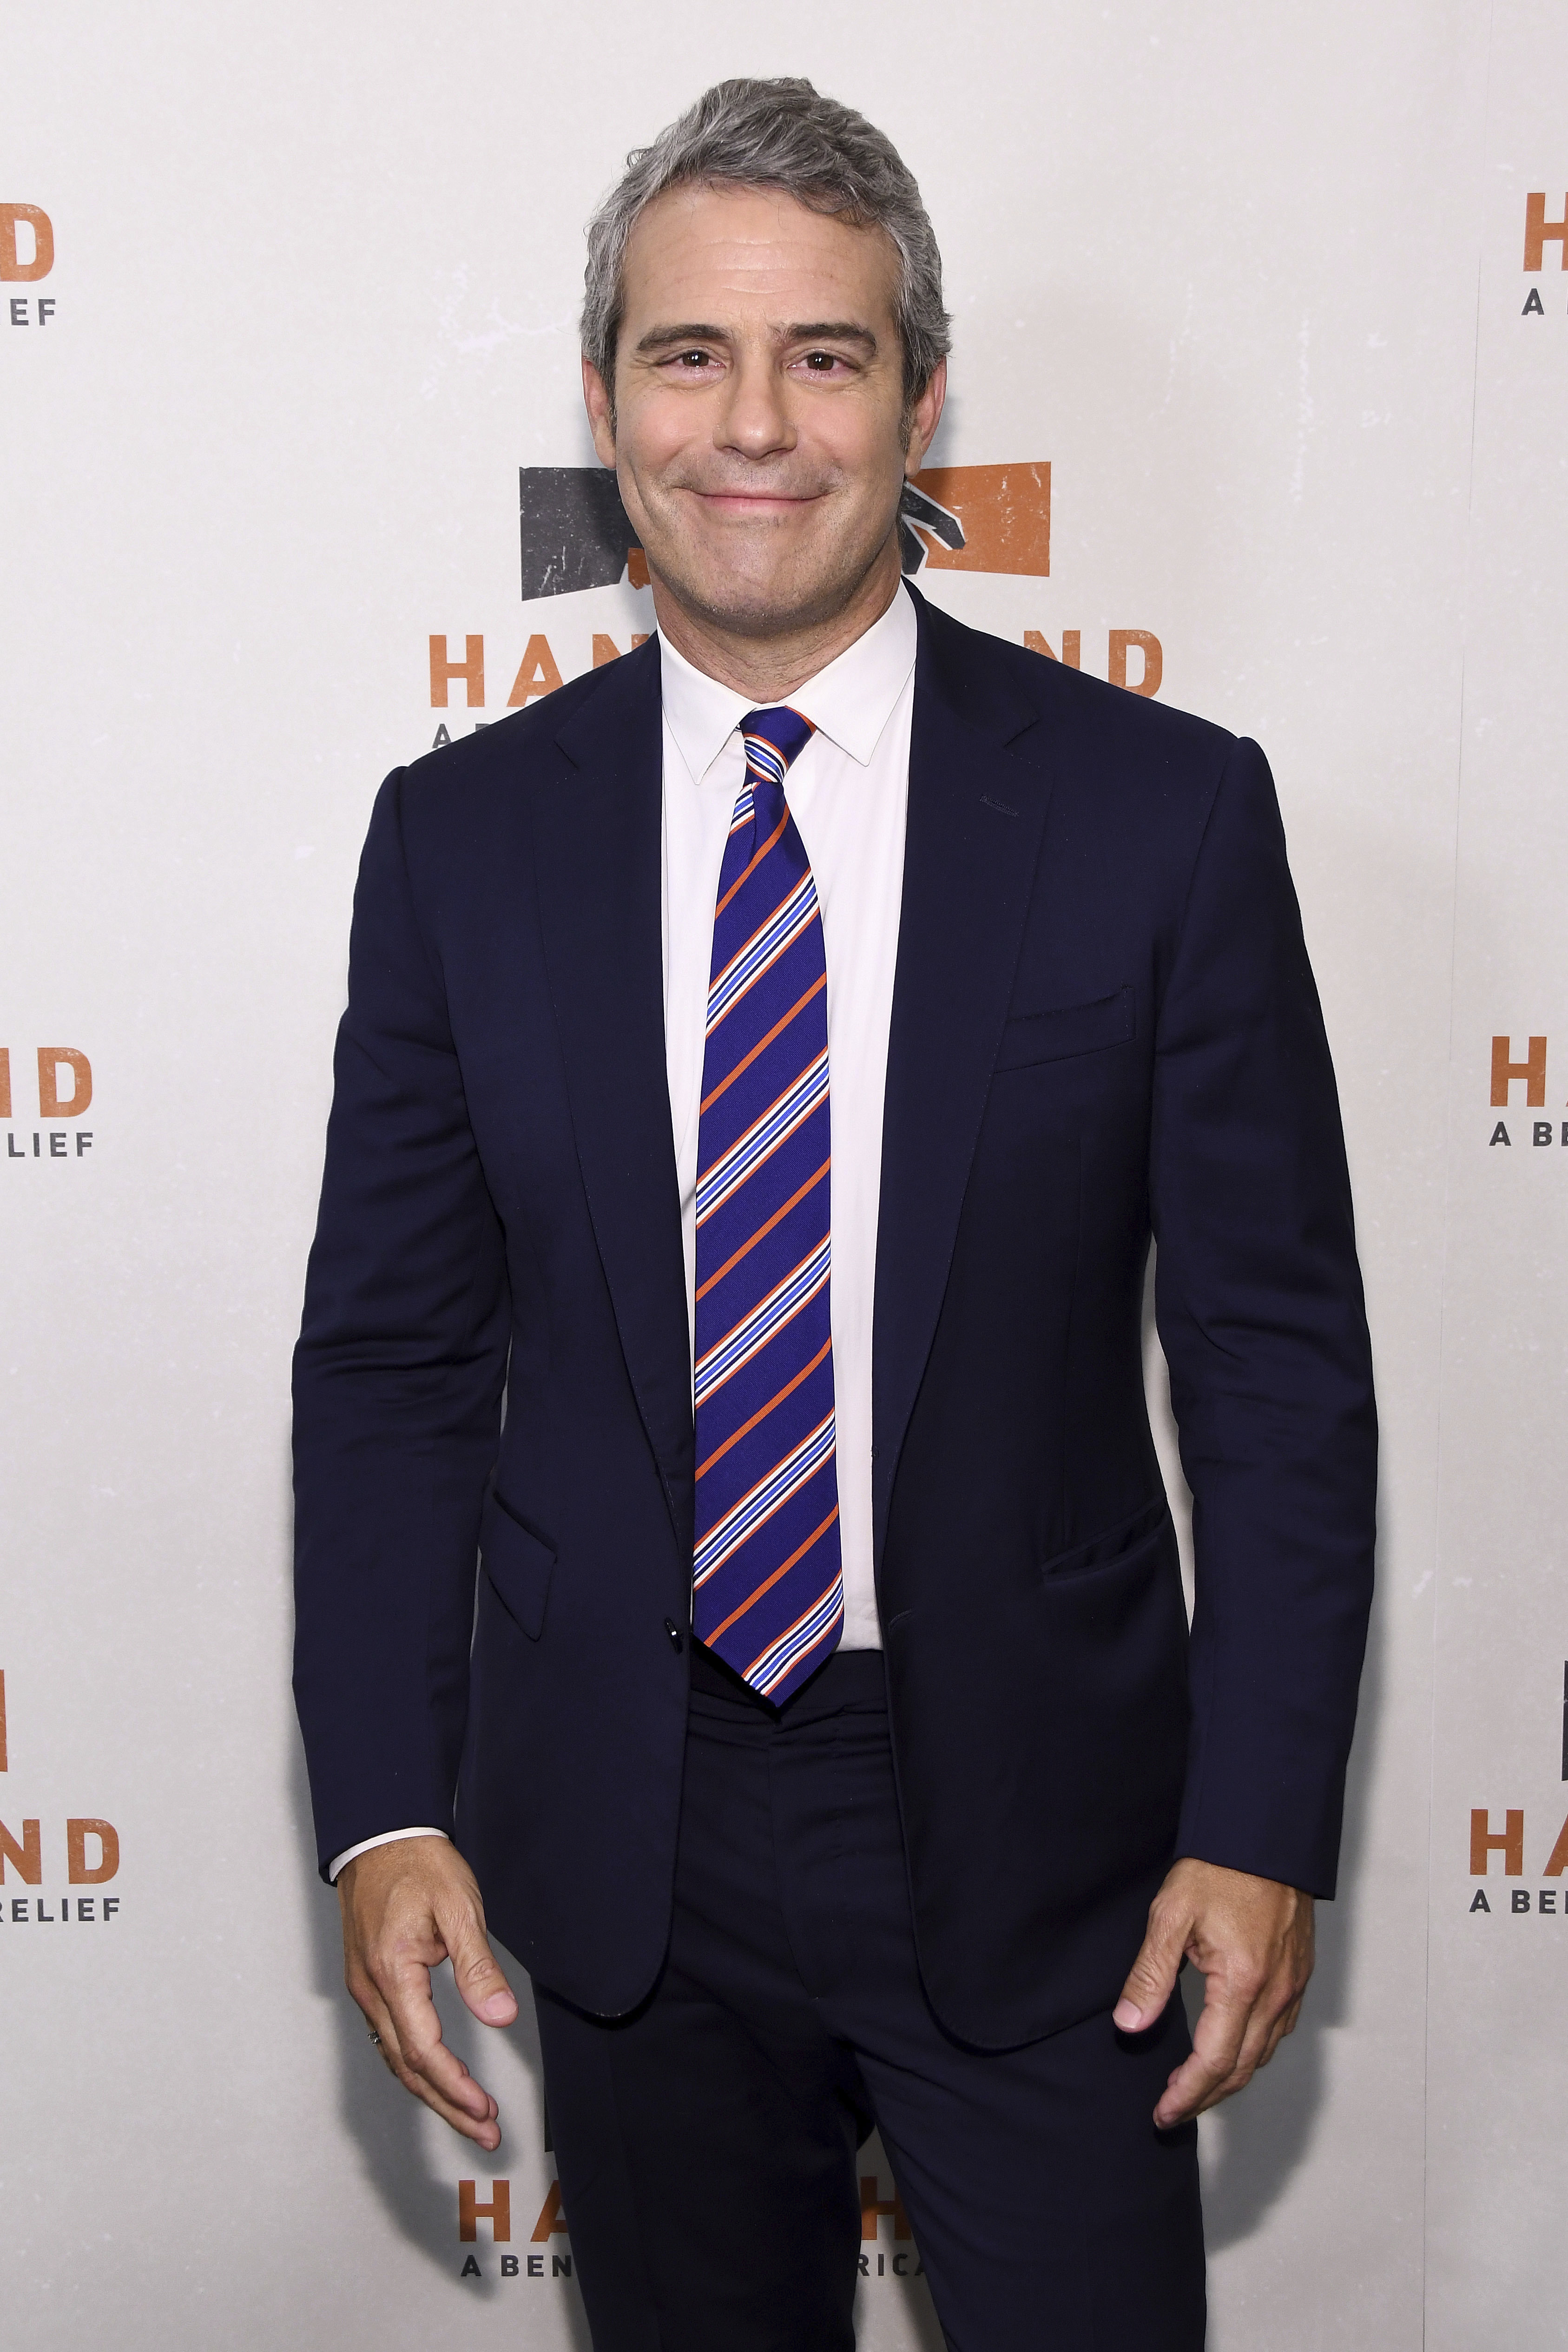 "<div class=""meta image-caption""><div class=""origin-logo origin-image none""><span>none</span></div><span class=""caption-text"">Andy Cohen attends Hand in Hand: A Benefit for Hurricane Harvey Relief at ABC Studios on Tuesday, Sept. 12, 2017, in New York. (Charles Sykes/Invision/AP)</span></div>"